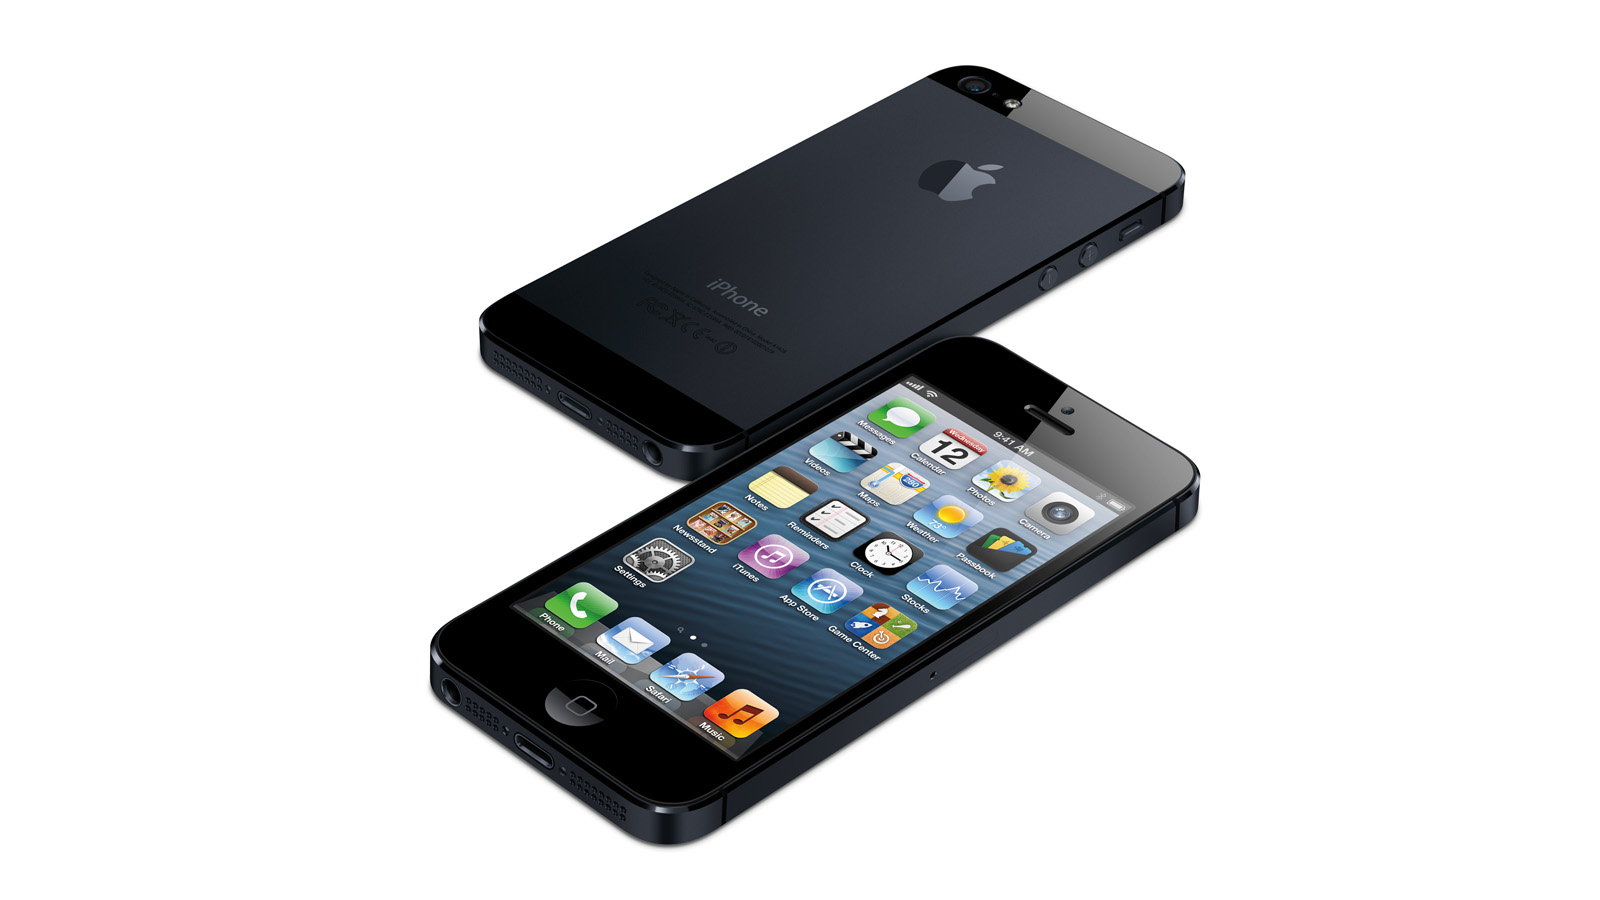 Click here to read Walmart's Got a $127 iPhone 5 and Other Crazy Cheap Deals